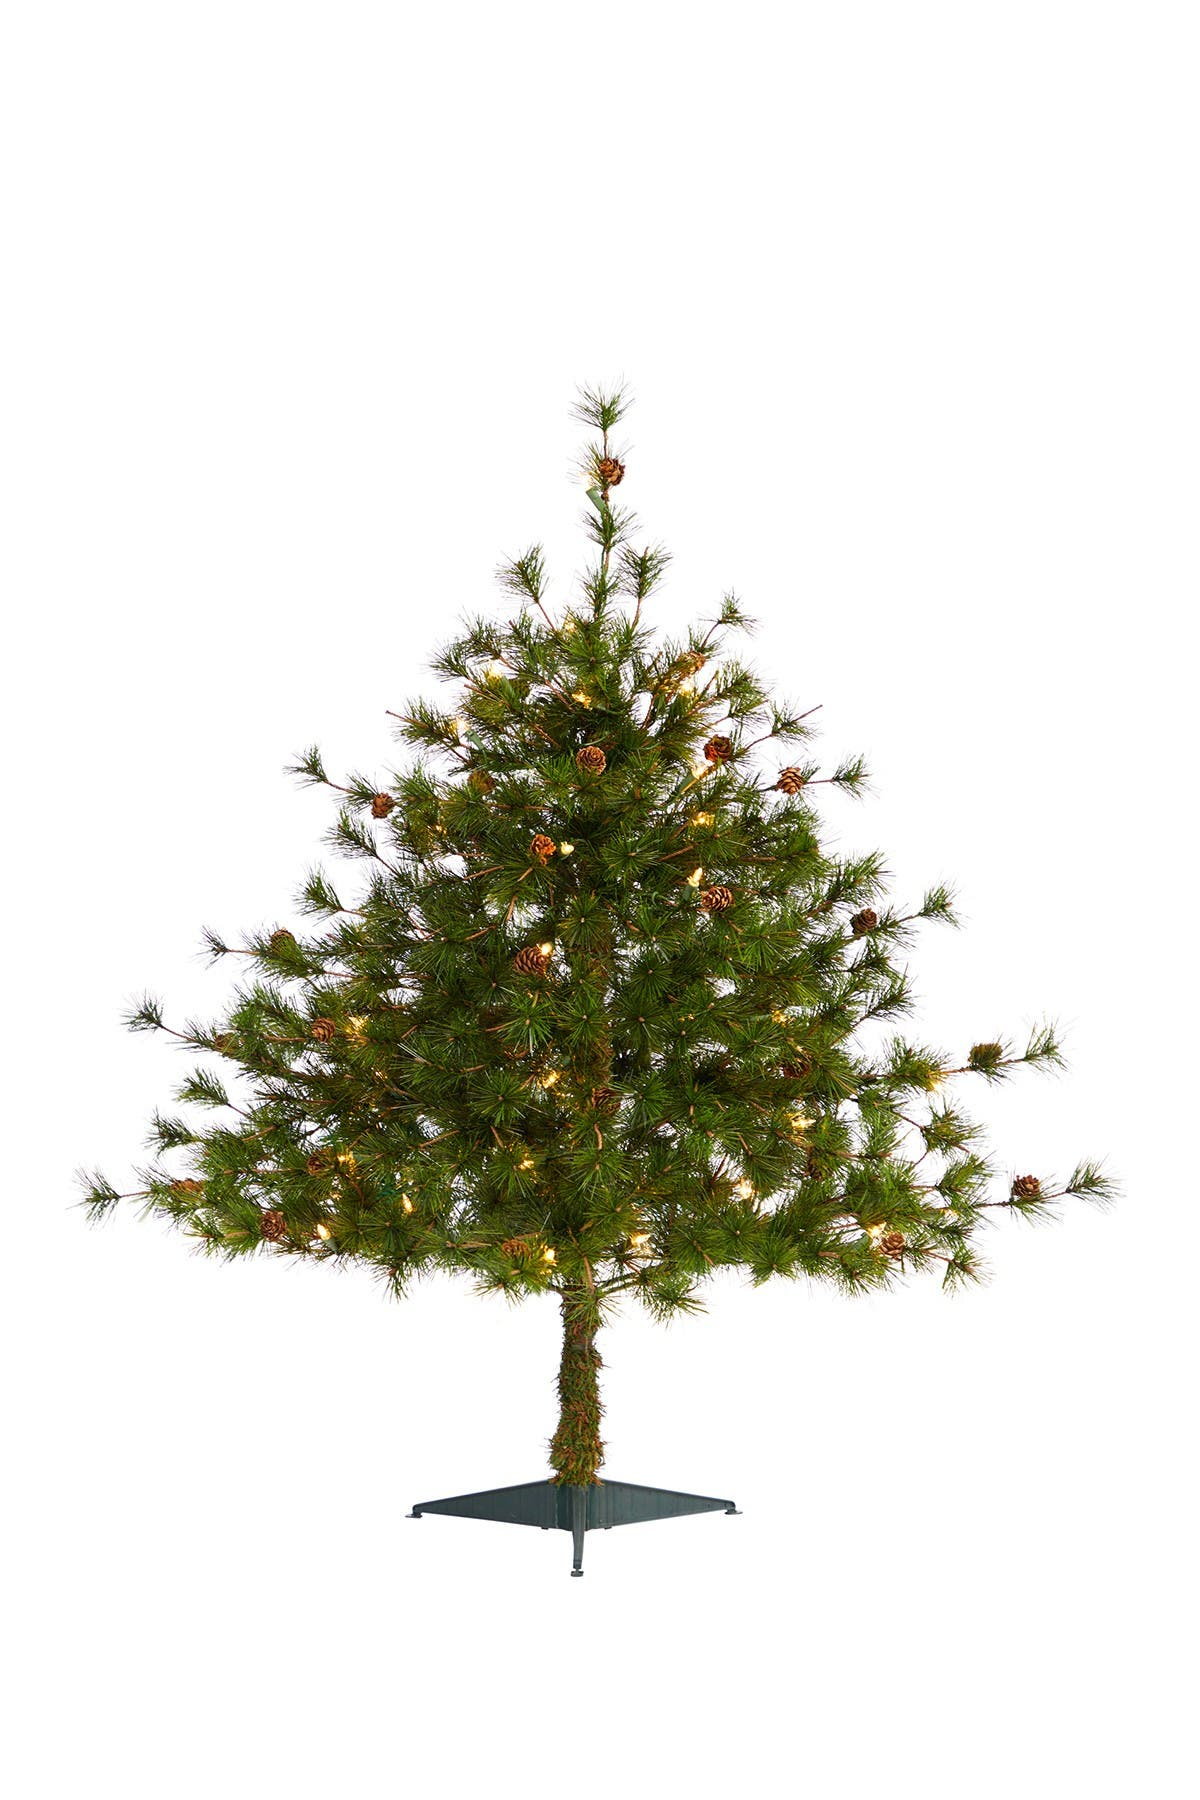 Image of NEARLY NATURAL 3ft. Colorado Mountain Pine Artificial Christmas Tree with 50 Clear Lights & Pine Cones